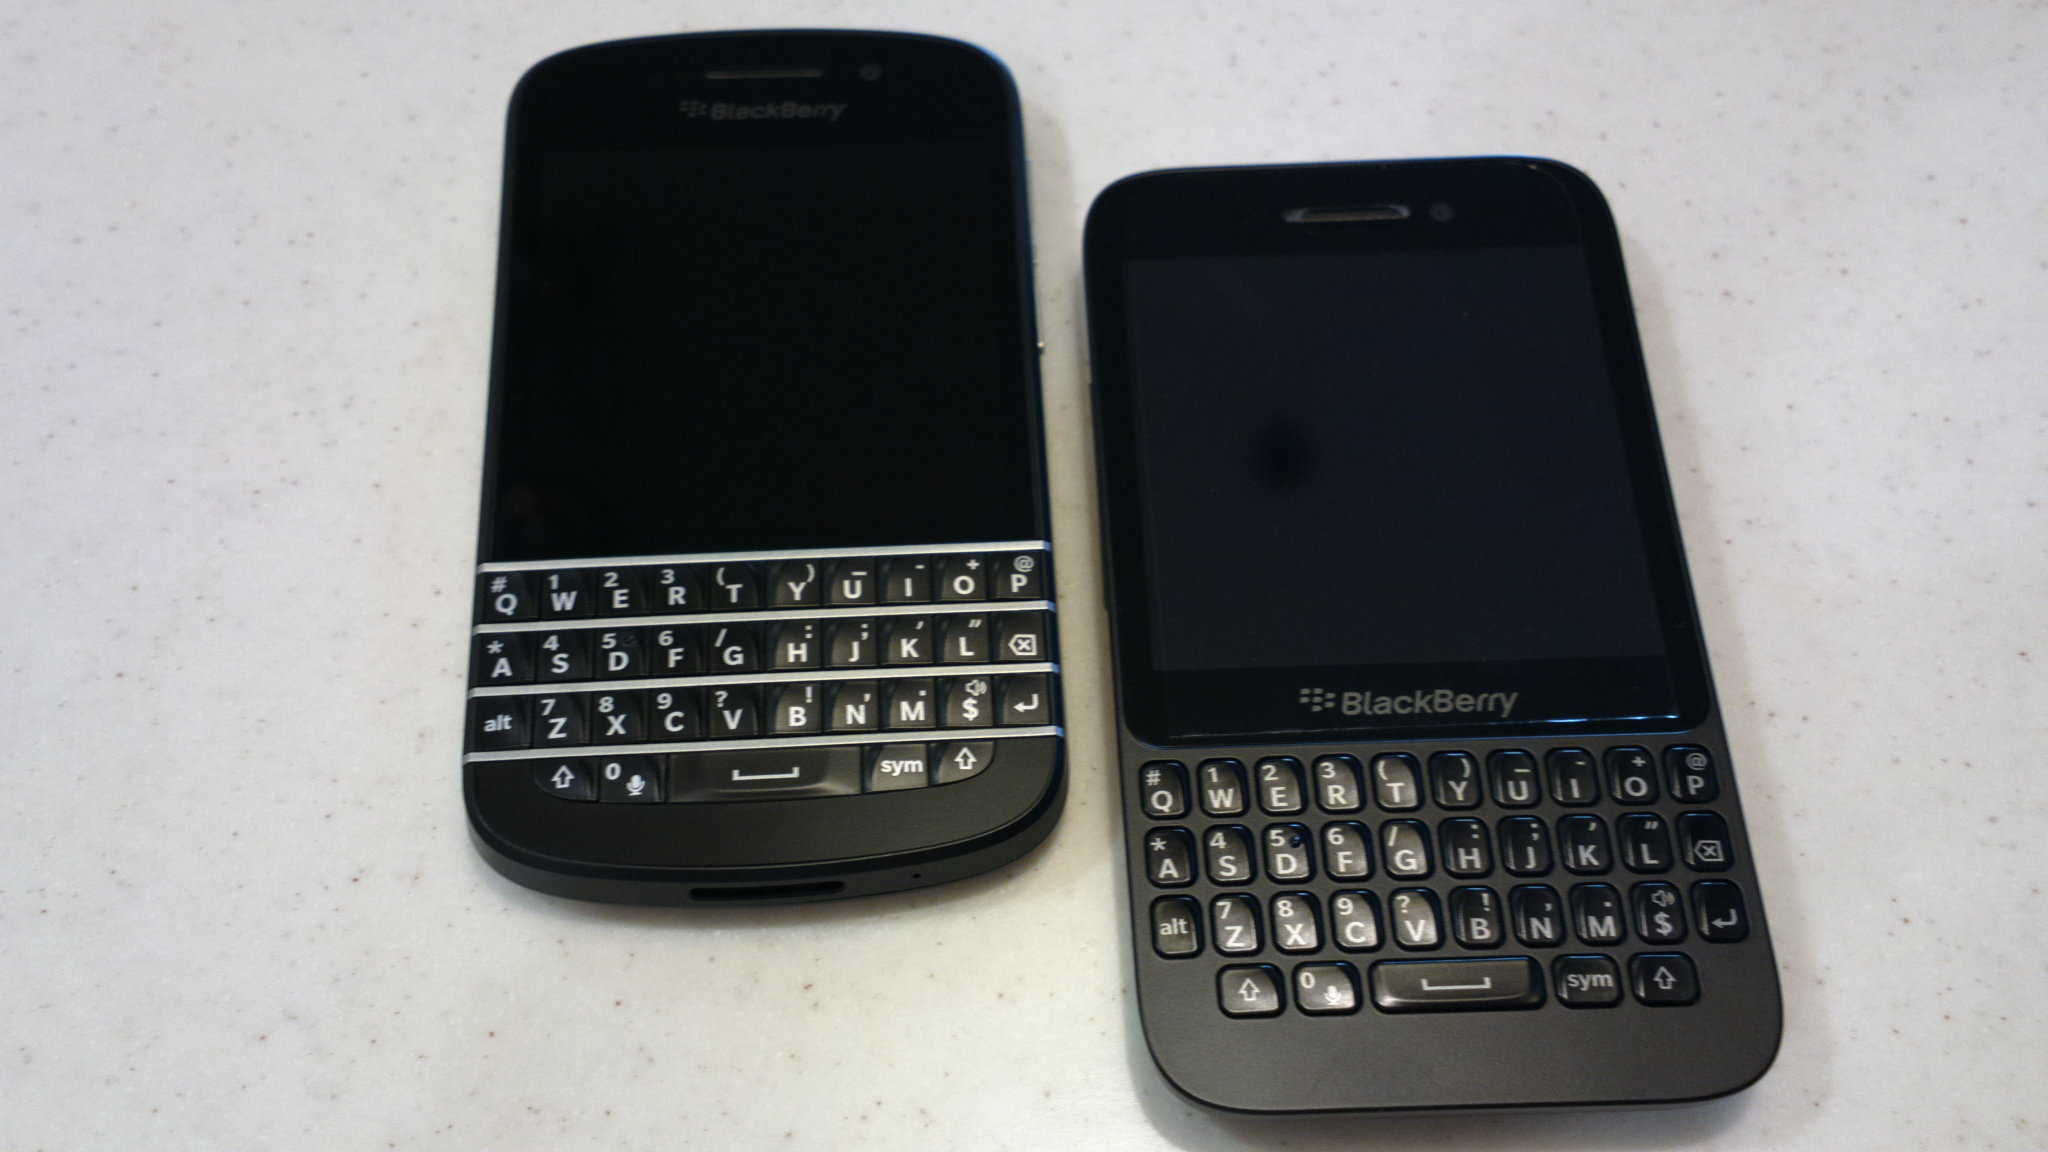 Compare between blackberry q10 and q5